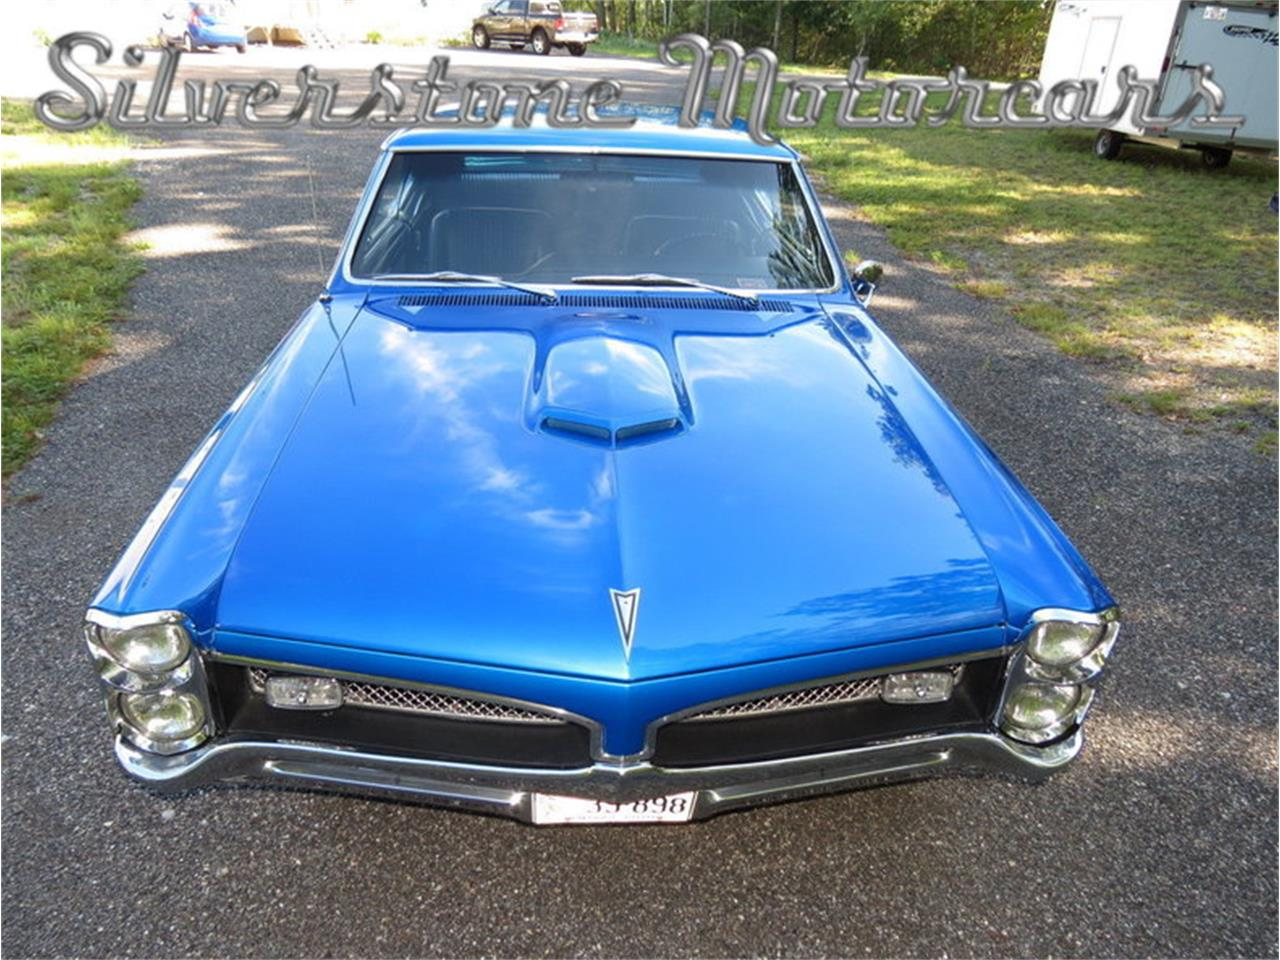 Large Picture of 1967 Pontiac GTO located in North Andover Massachusetts - $59,900.00 Offered by Silverstone Motorcars - JG3G